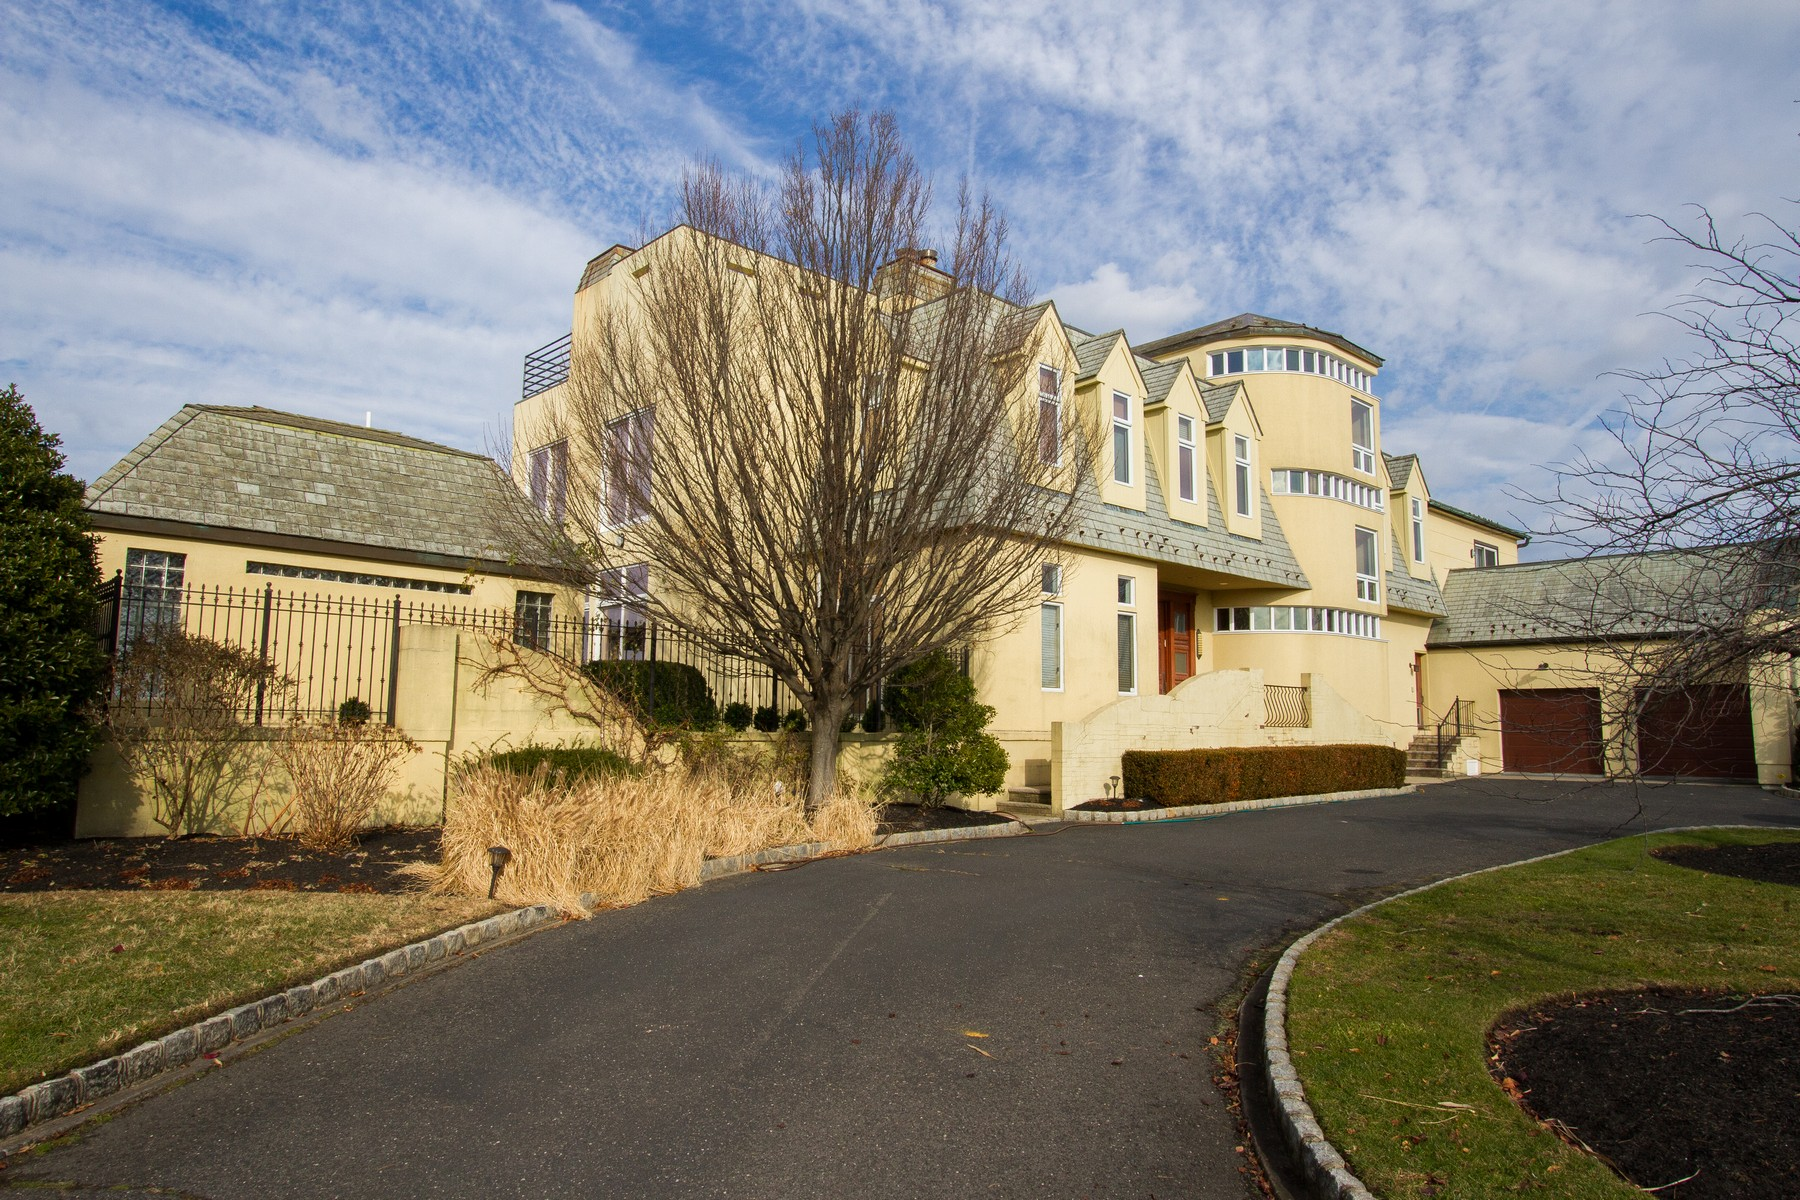 Single Family Home for Sale at Every Home is a Masterpiece 35 Highland Avenue Monmouth Beach, New Jersey 07750 United States